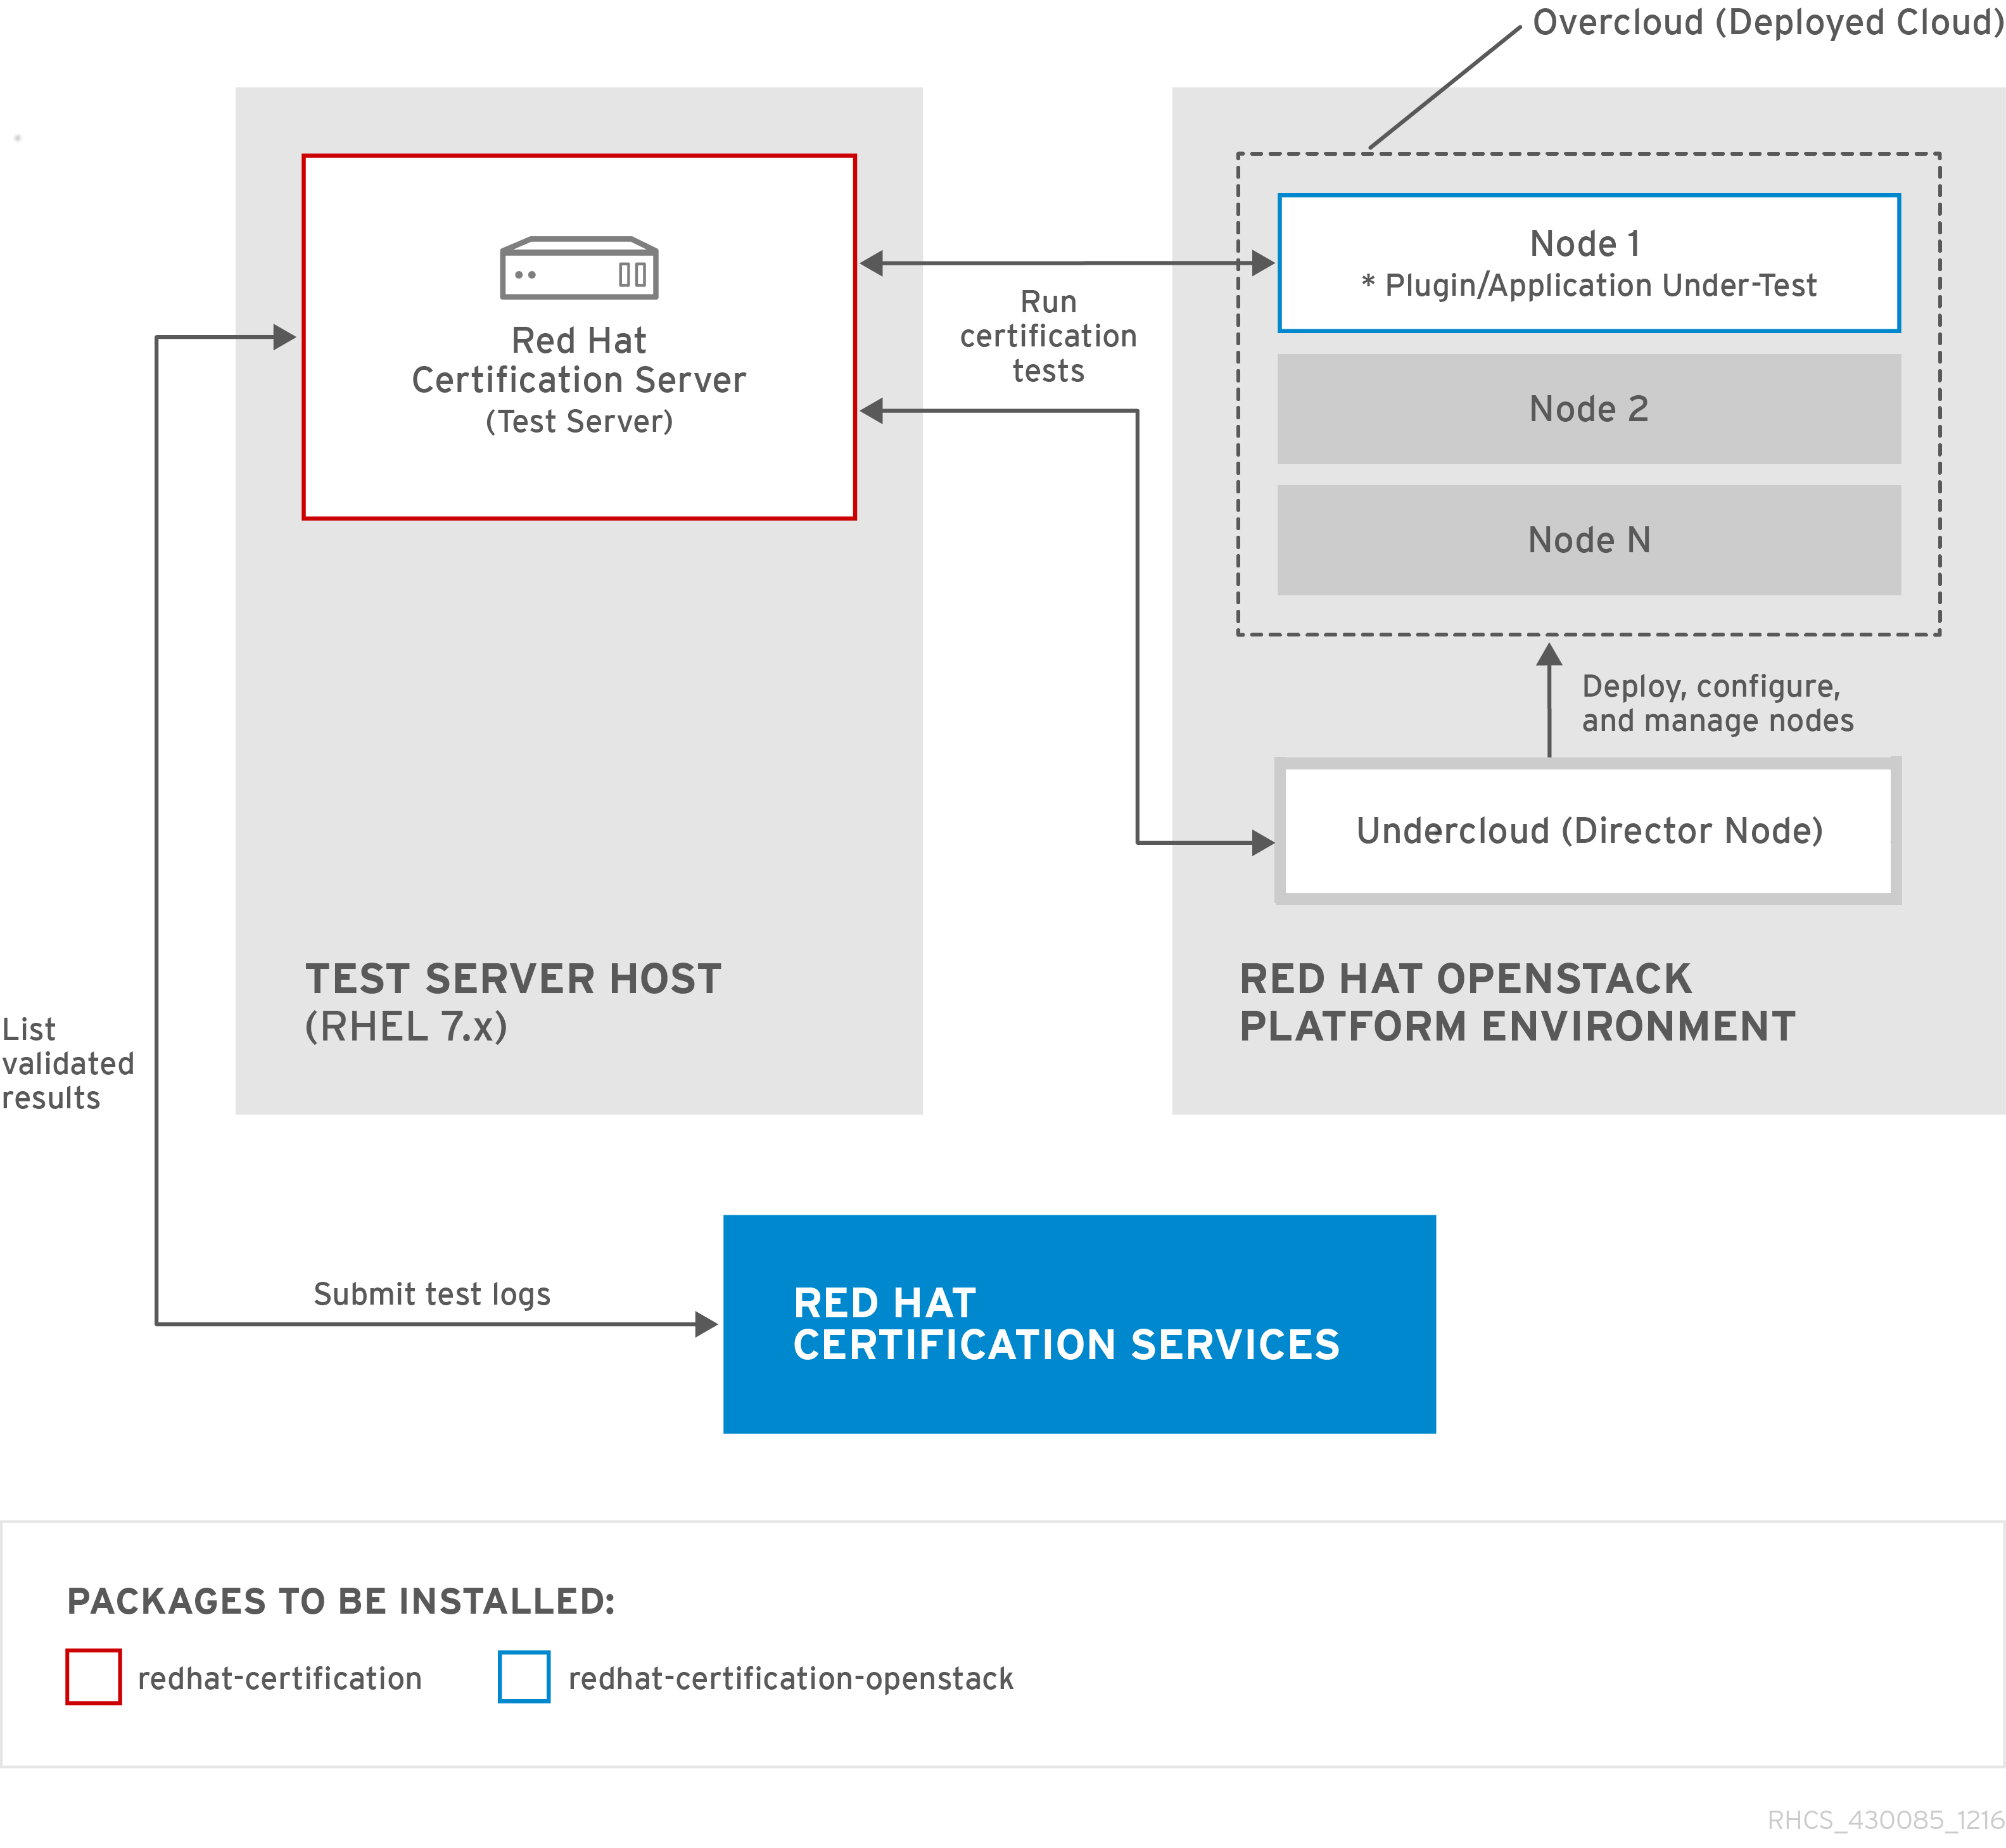 Red Hat OpenStack Certification Workflow Guide Red Hat